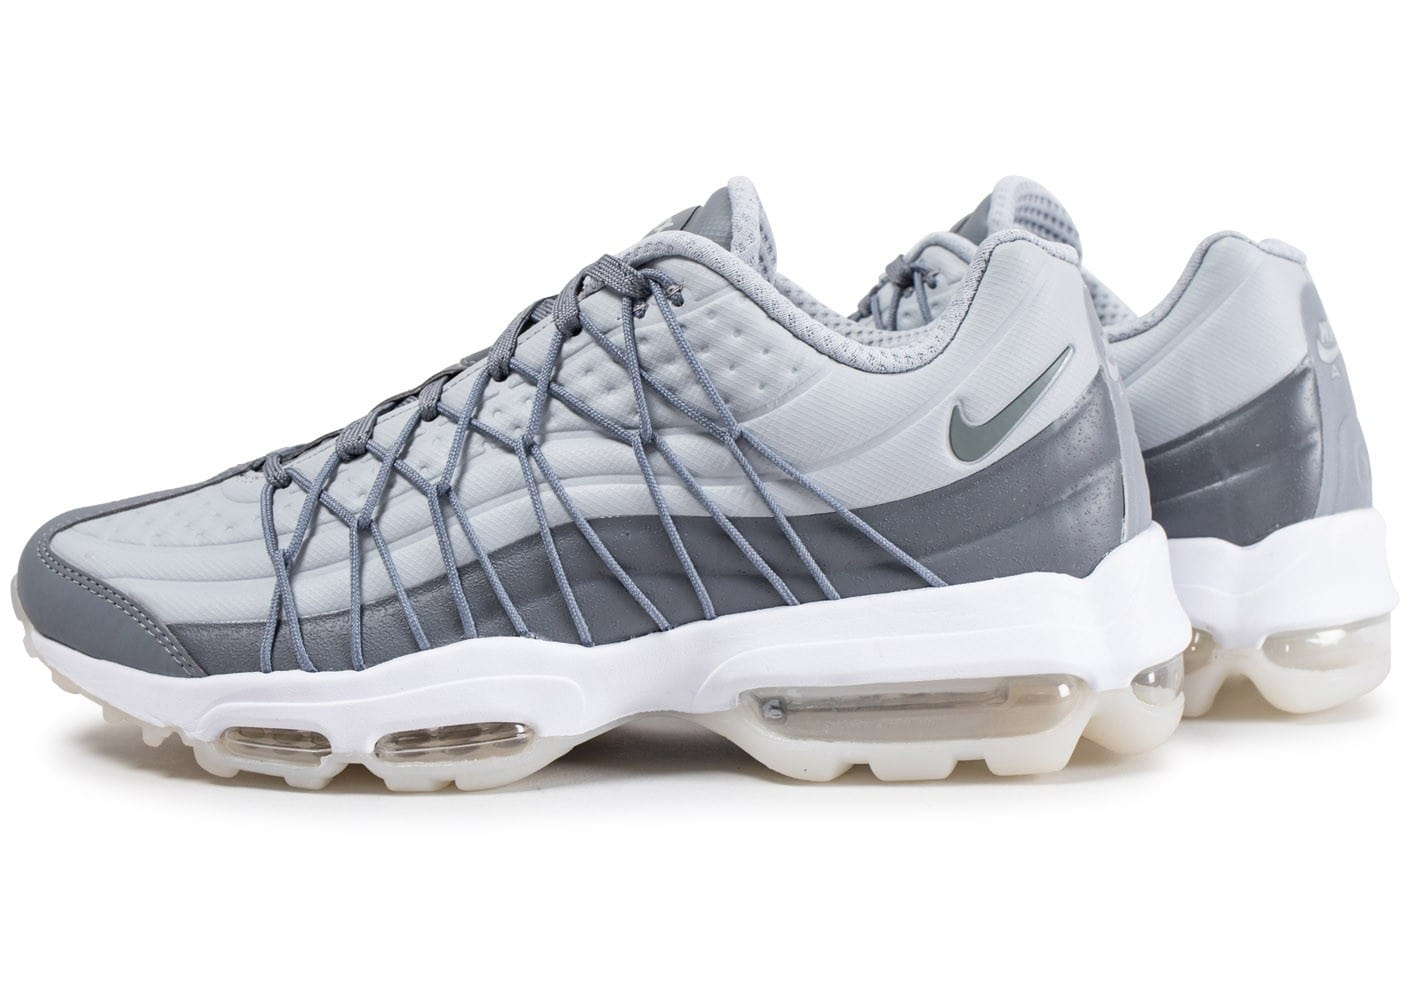 huge selection of a24f4 3f85f Cliquez pour zoomer Chaussures Nike Air Max 95 Ultra grise vue extérieure  ...